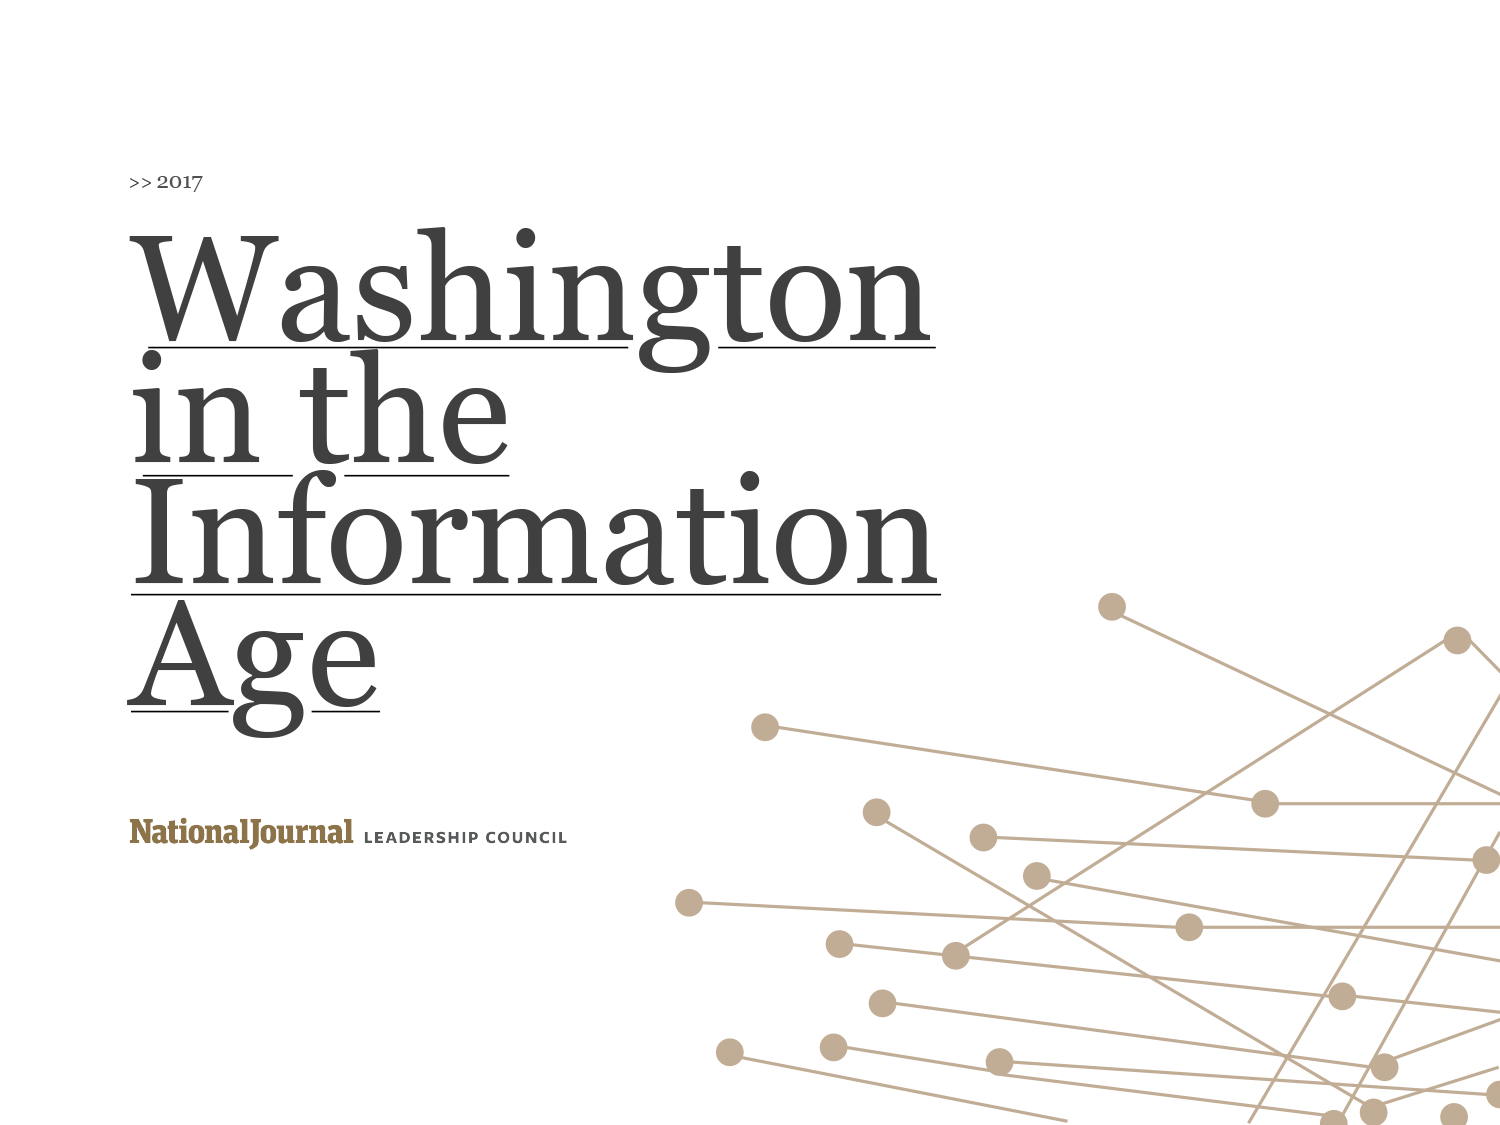 Washington in the Information Age 2017